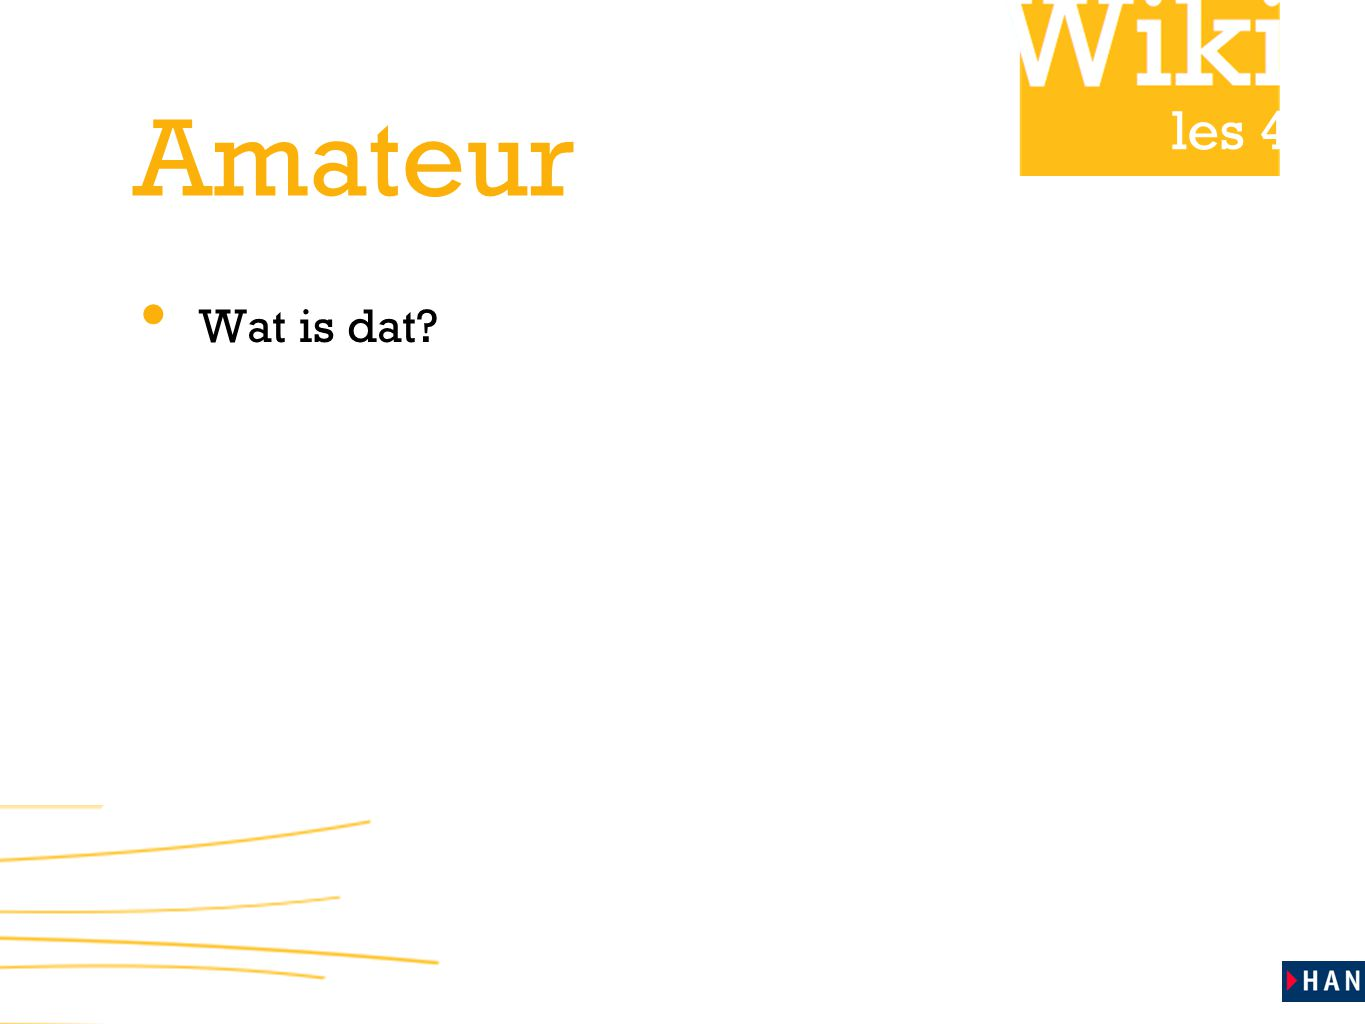 les 4 Amateur Wat is dat?